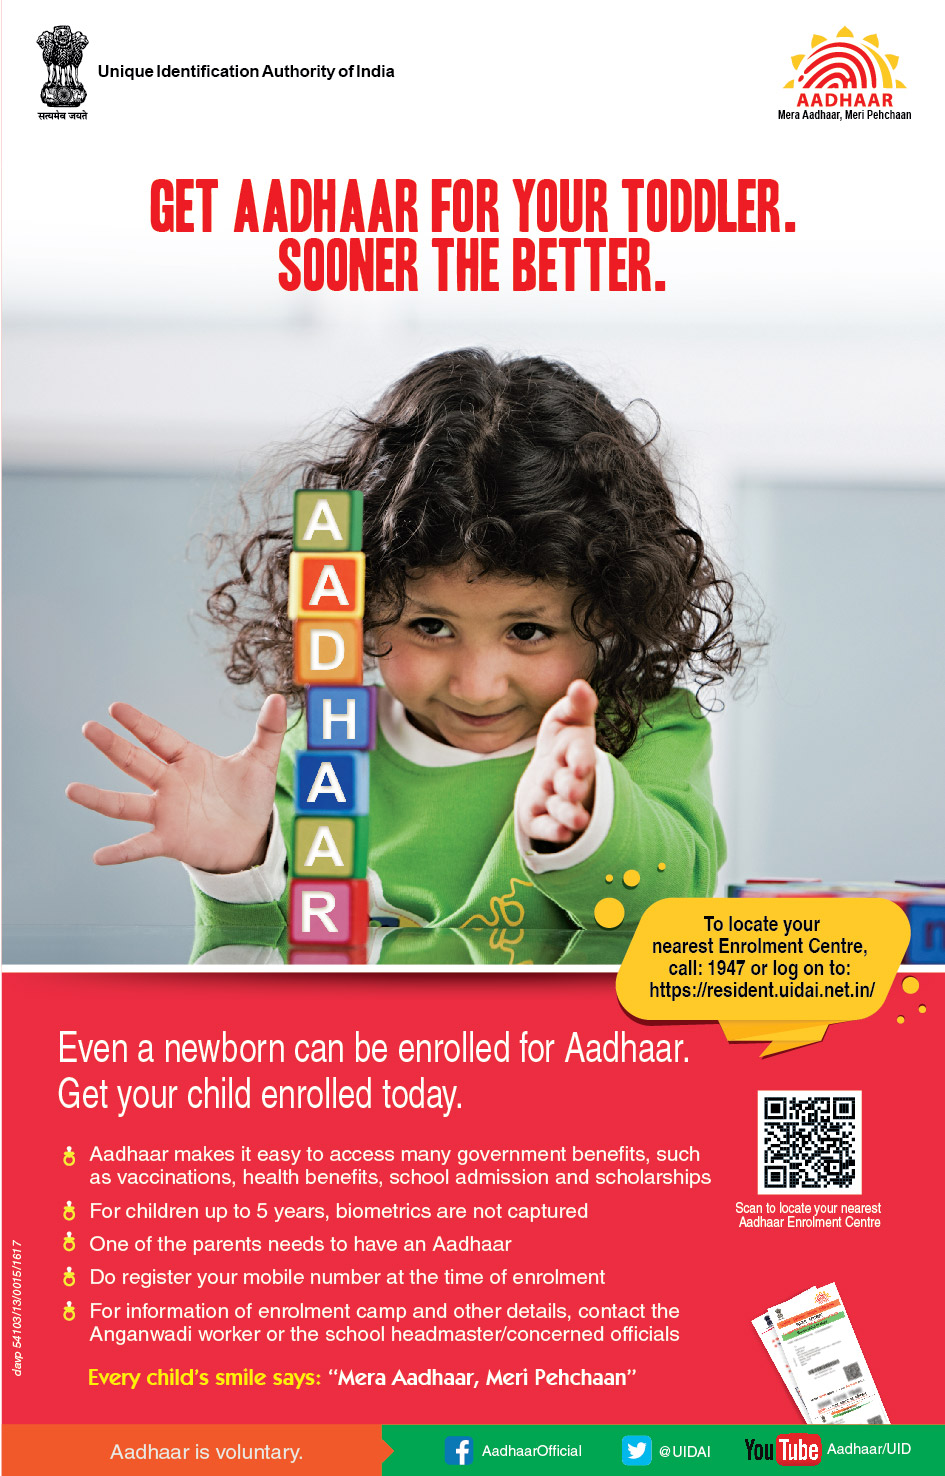 Even newborn can be enrolled for Aadhaar. Get your child enrolled today.